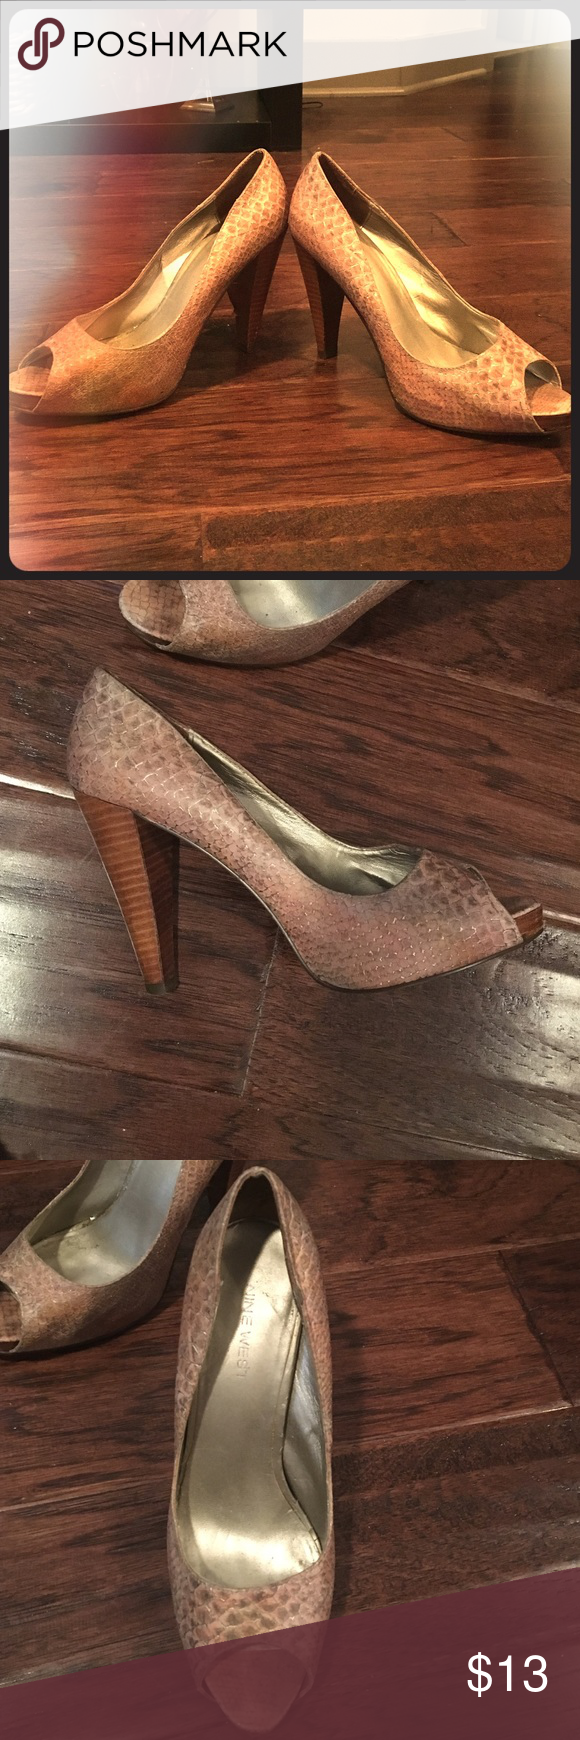 Blush Nine West peep-toe pumps Pumps are pre-owned. A little damage to the heel of the left foot but still wearable and cute. Nine West Shoes Heels